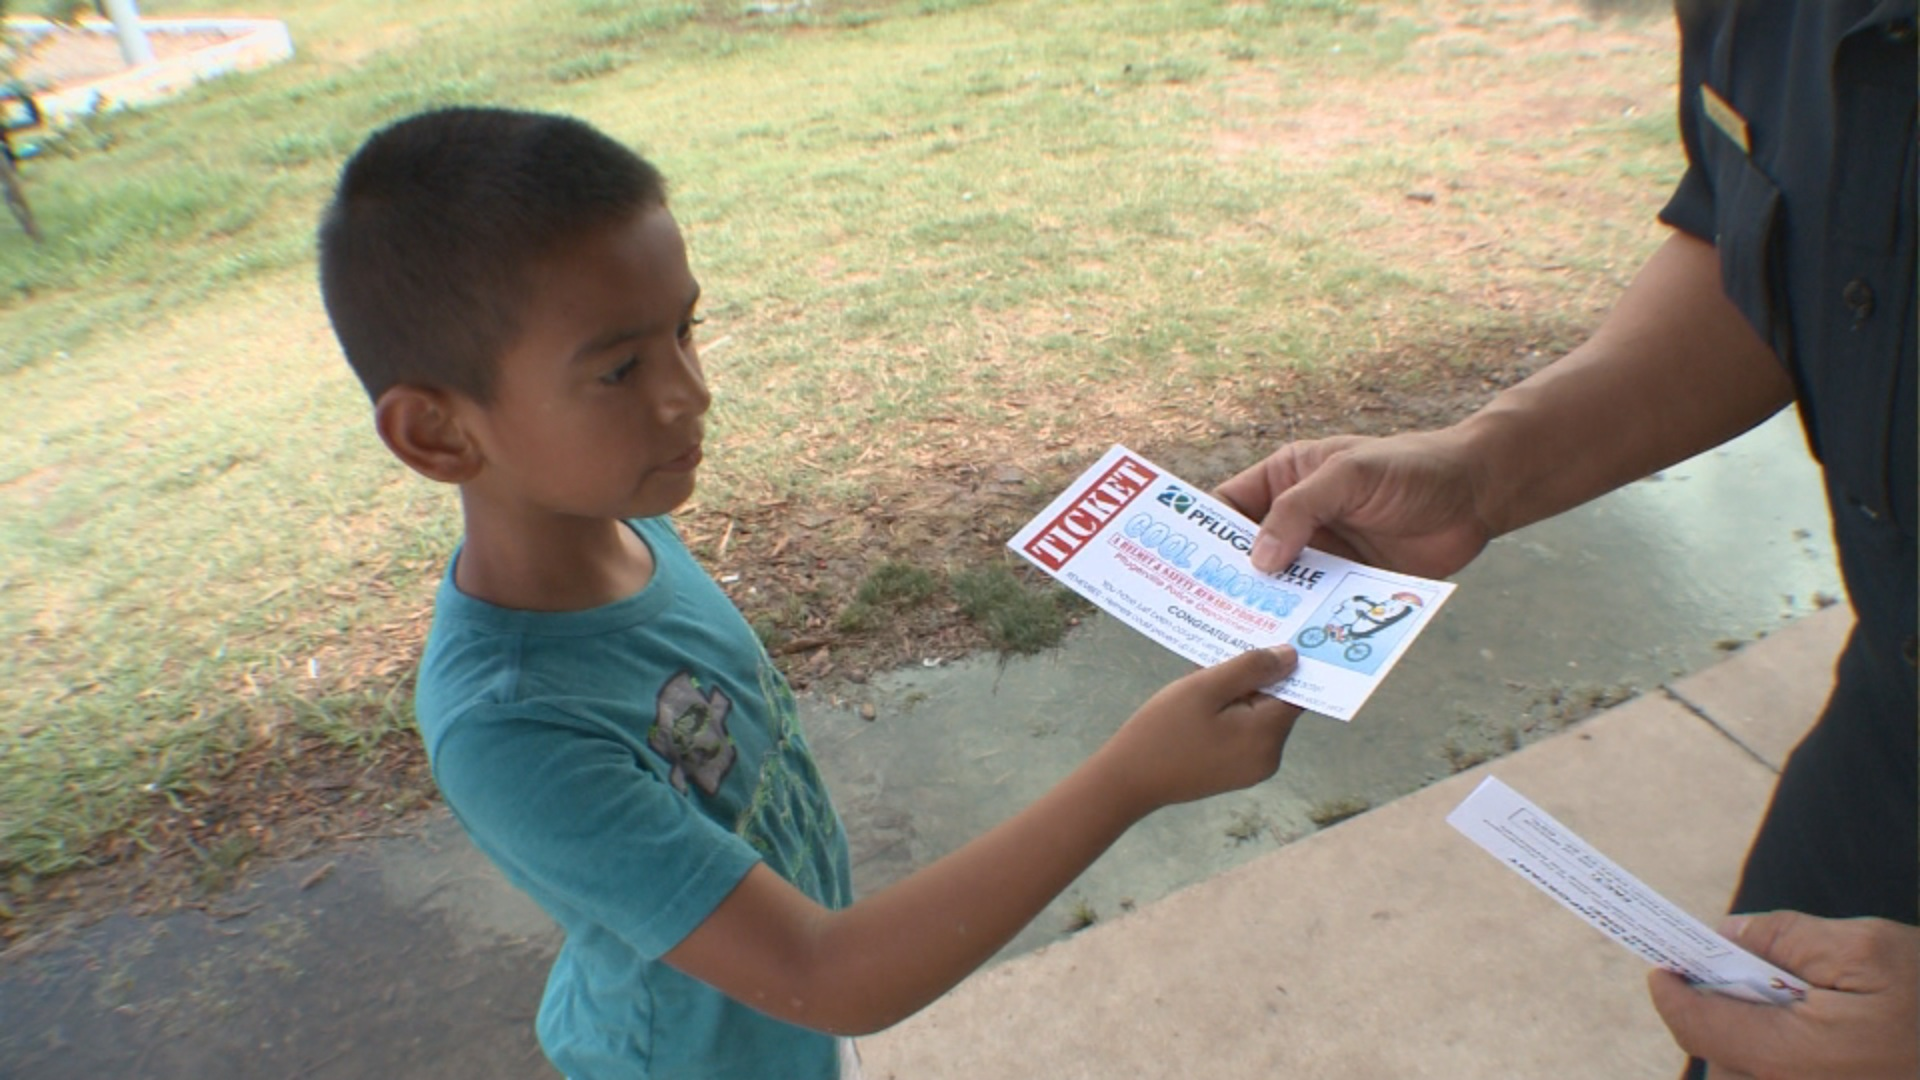 Pflugerville Police Handing Cool Move Ticket to Child_484836